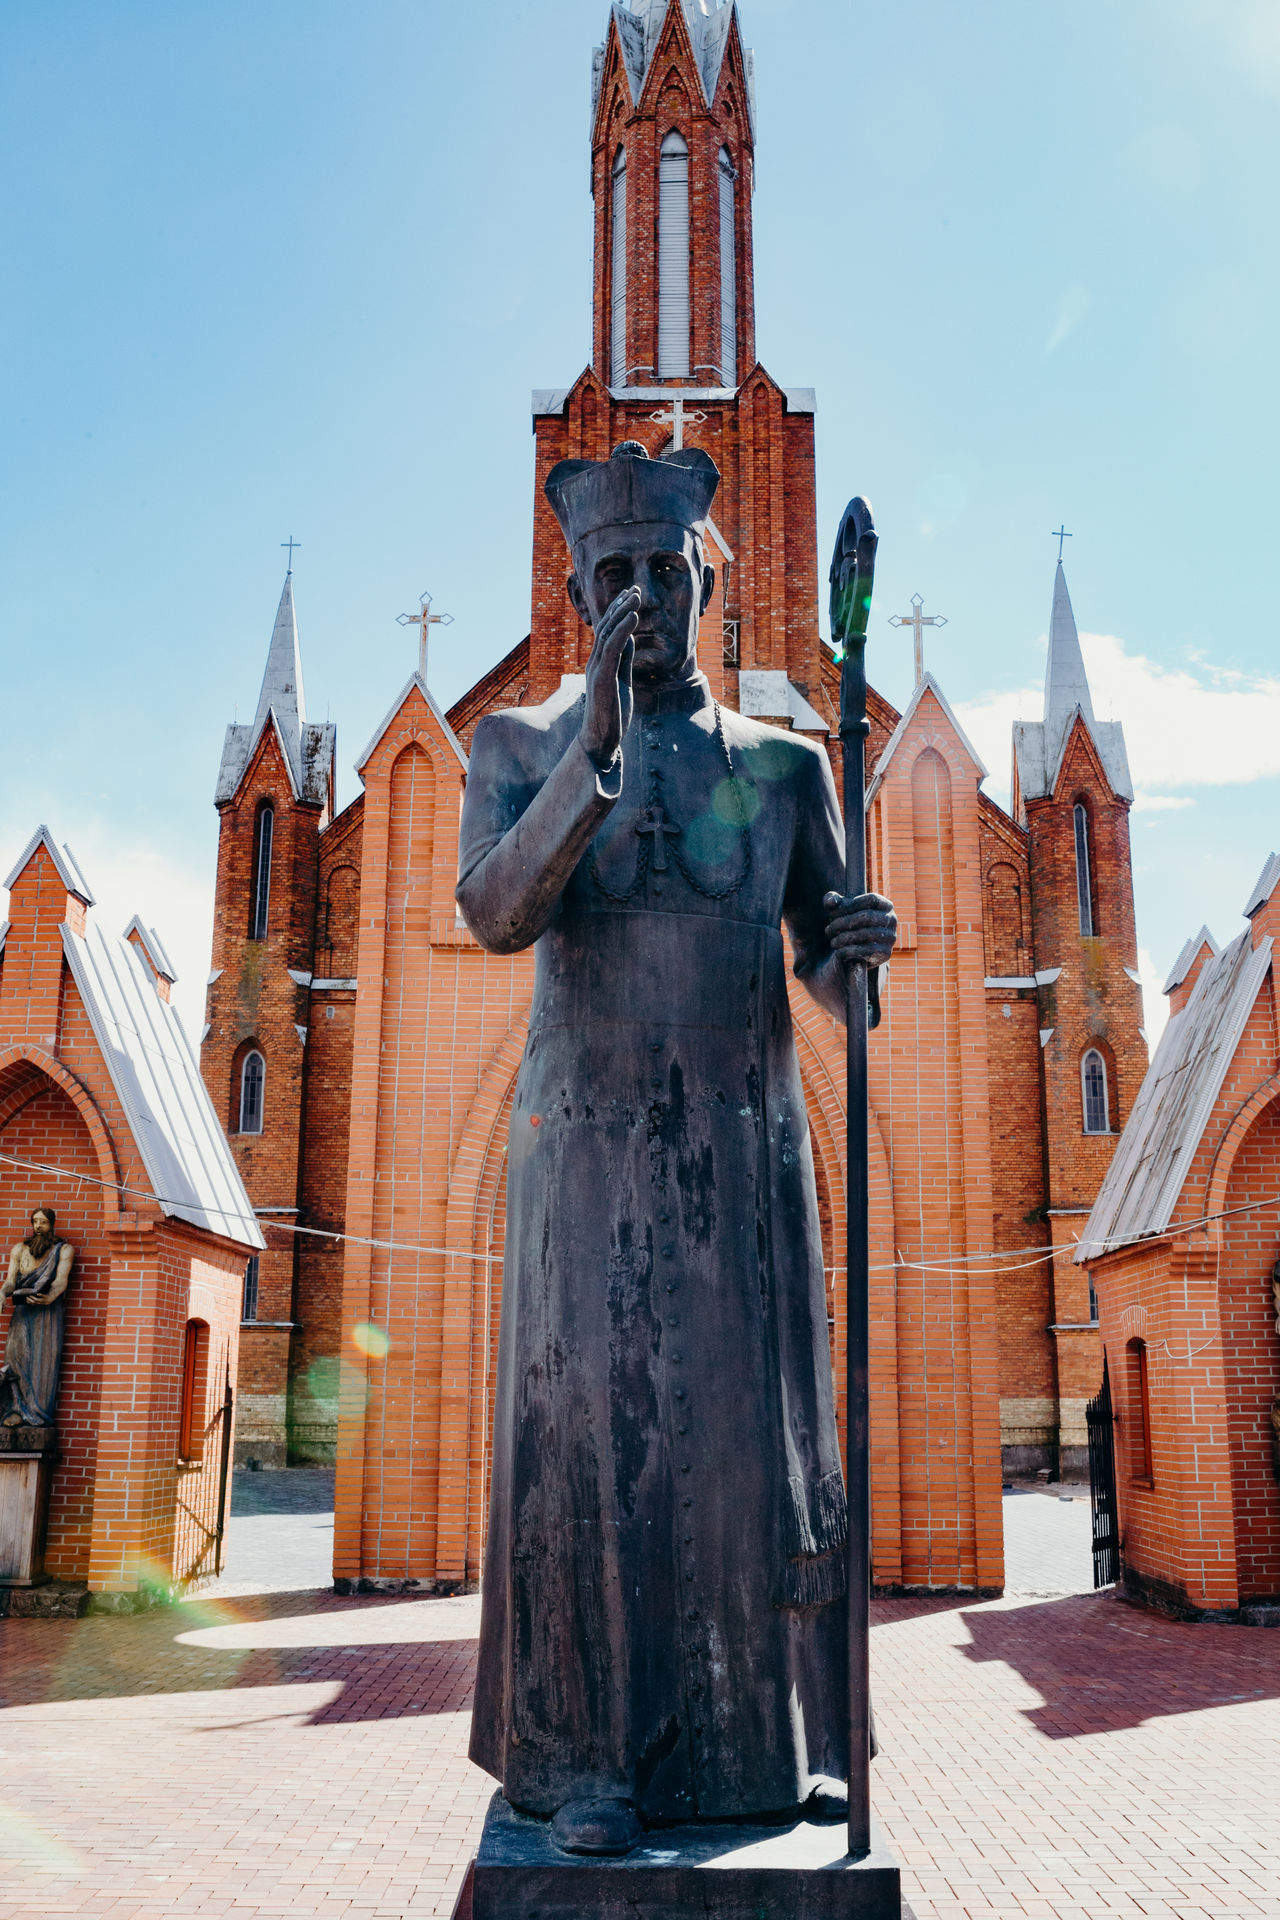 Architecture Building Exterior Built Structure Day History Human Representation Low Angle View Male Likeness No People Outdoors Place Of Worship Religion Sculpture Sky Spirituality Statue